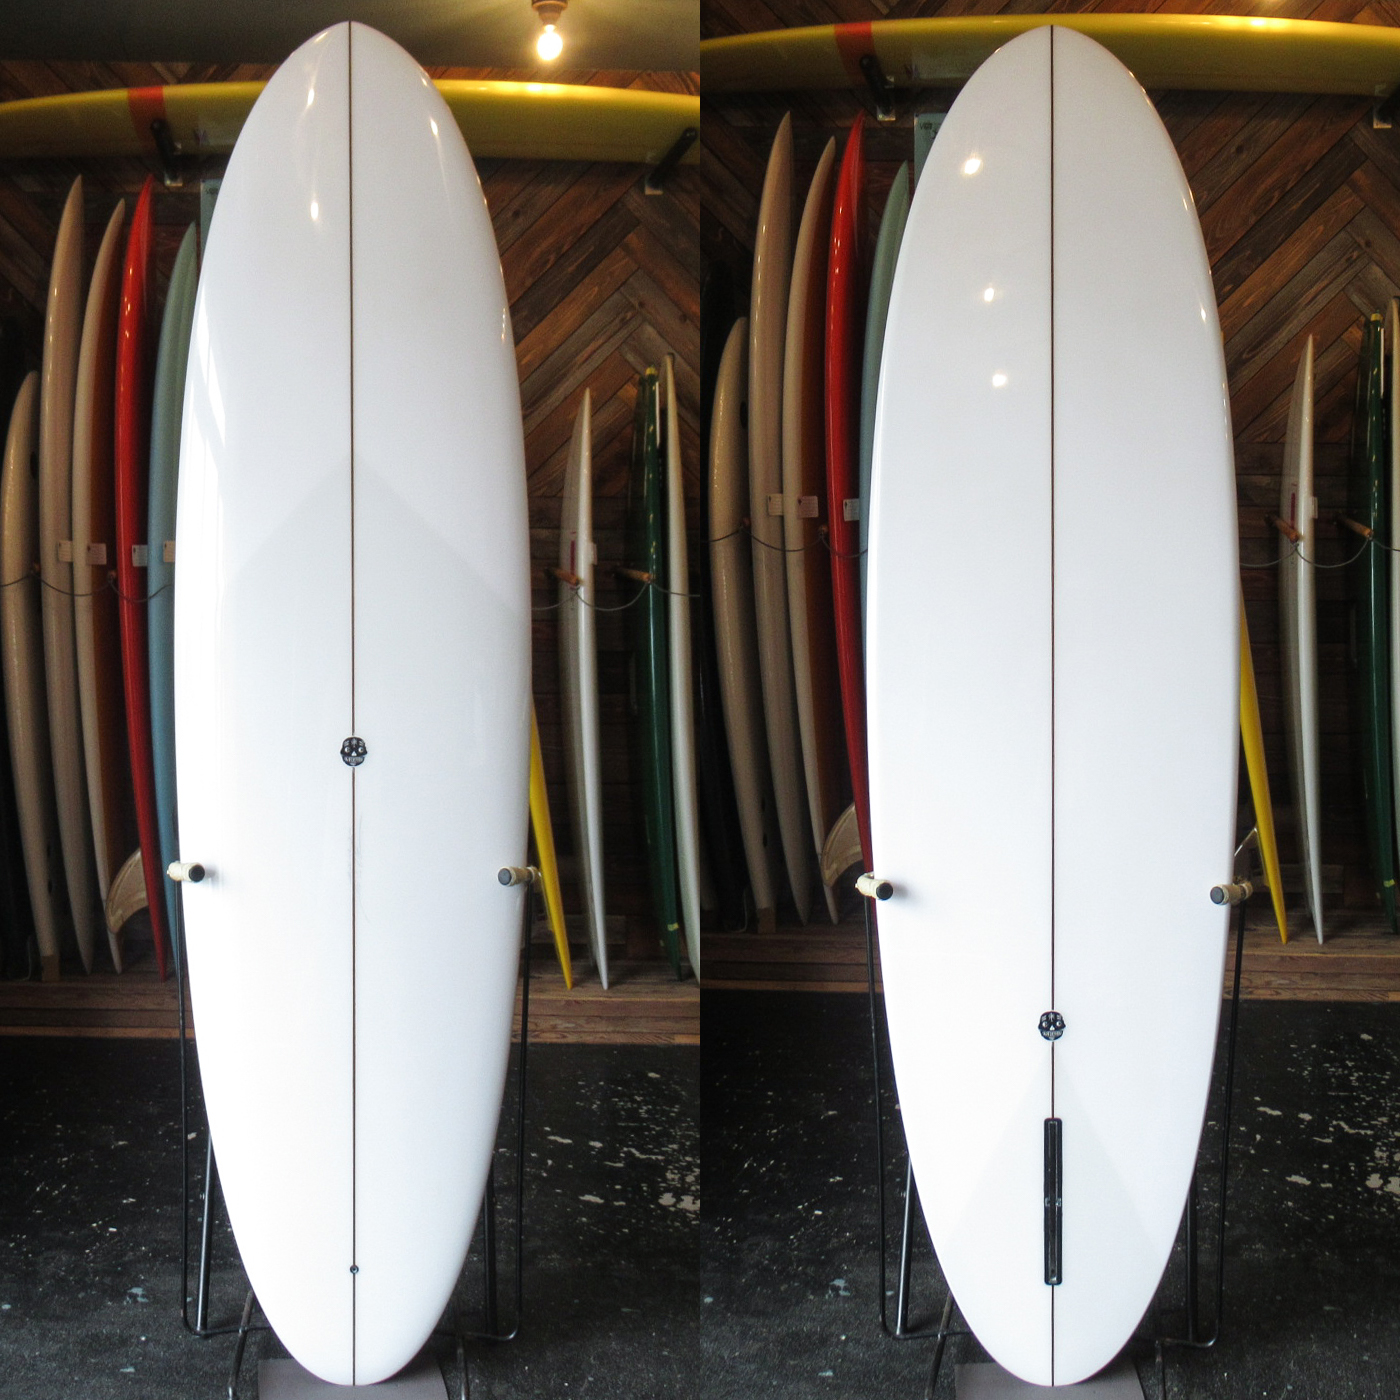 "【新品ストック】EC SURFBOARDS / FREE RIDE 6'10"" x 21-3/4"" x 2-7/8"" No.20200715_3"